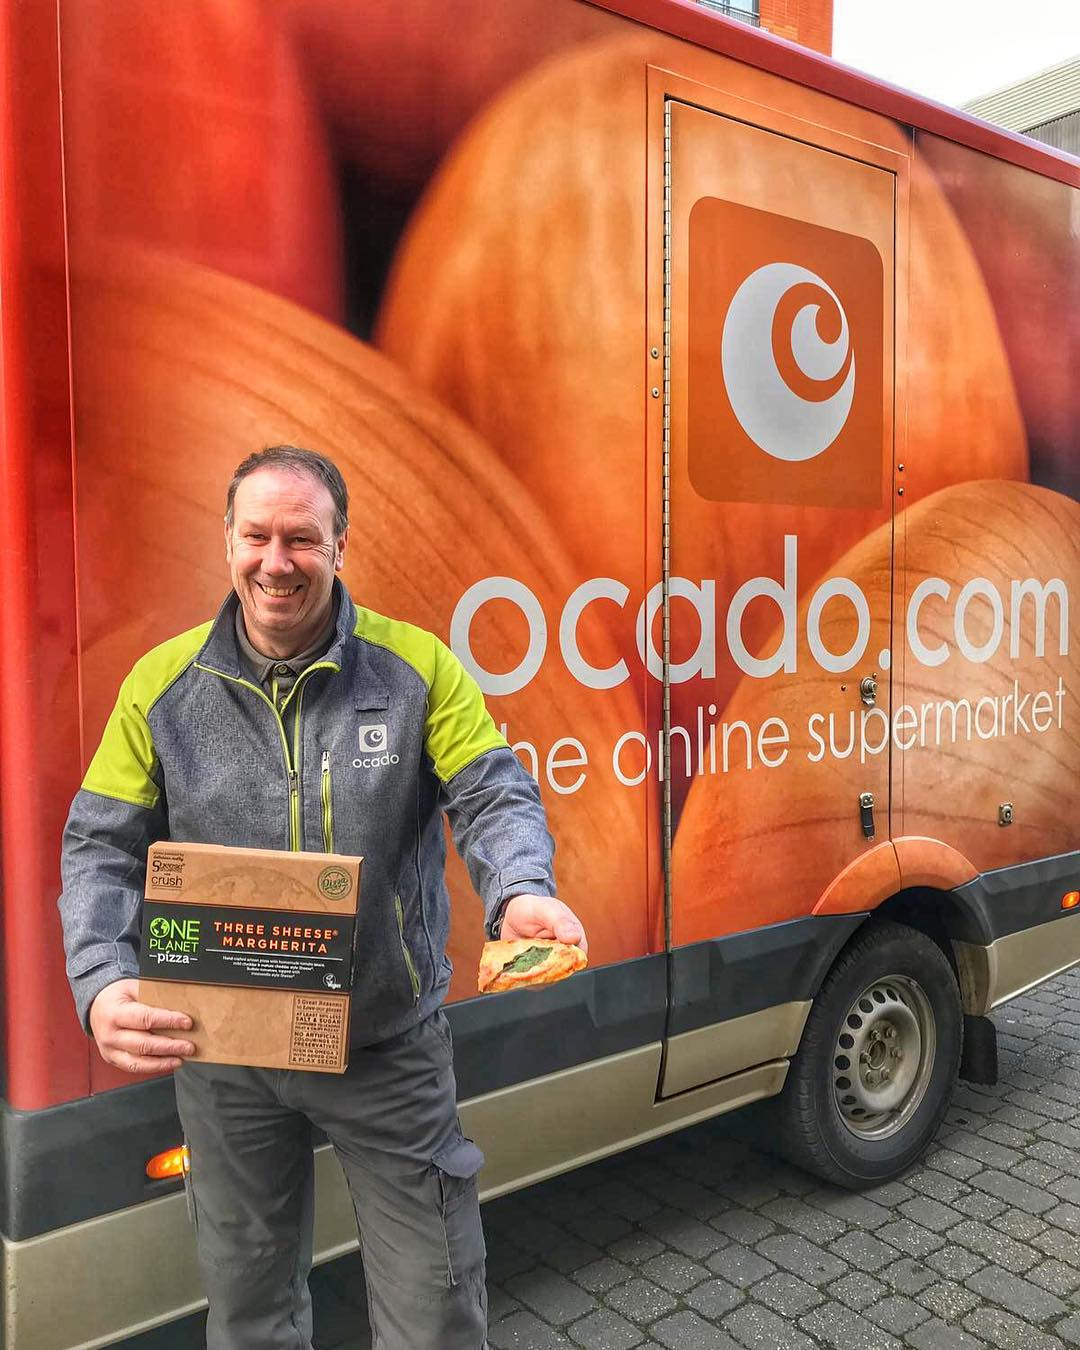 one planet pizza ocado